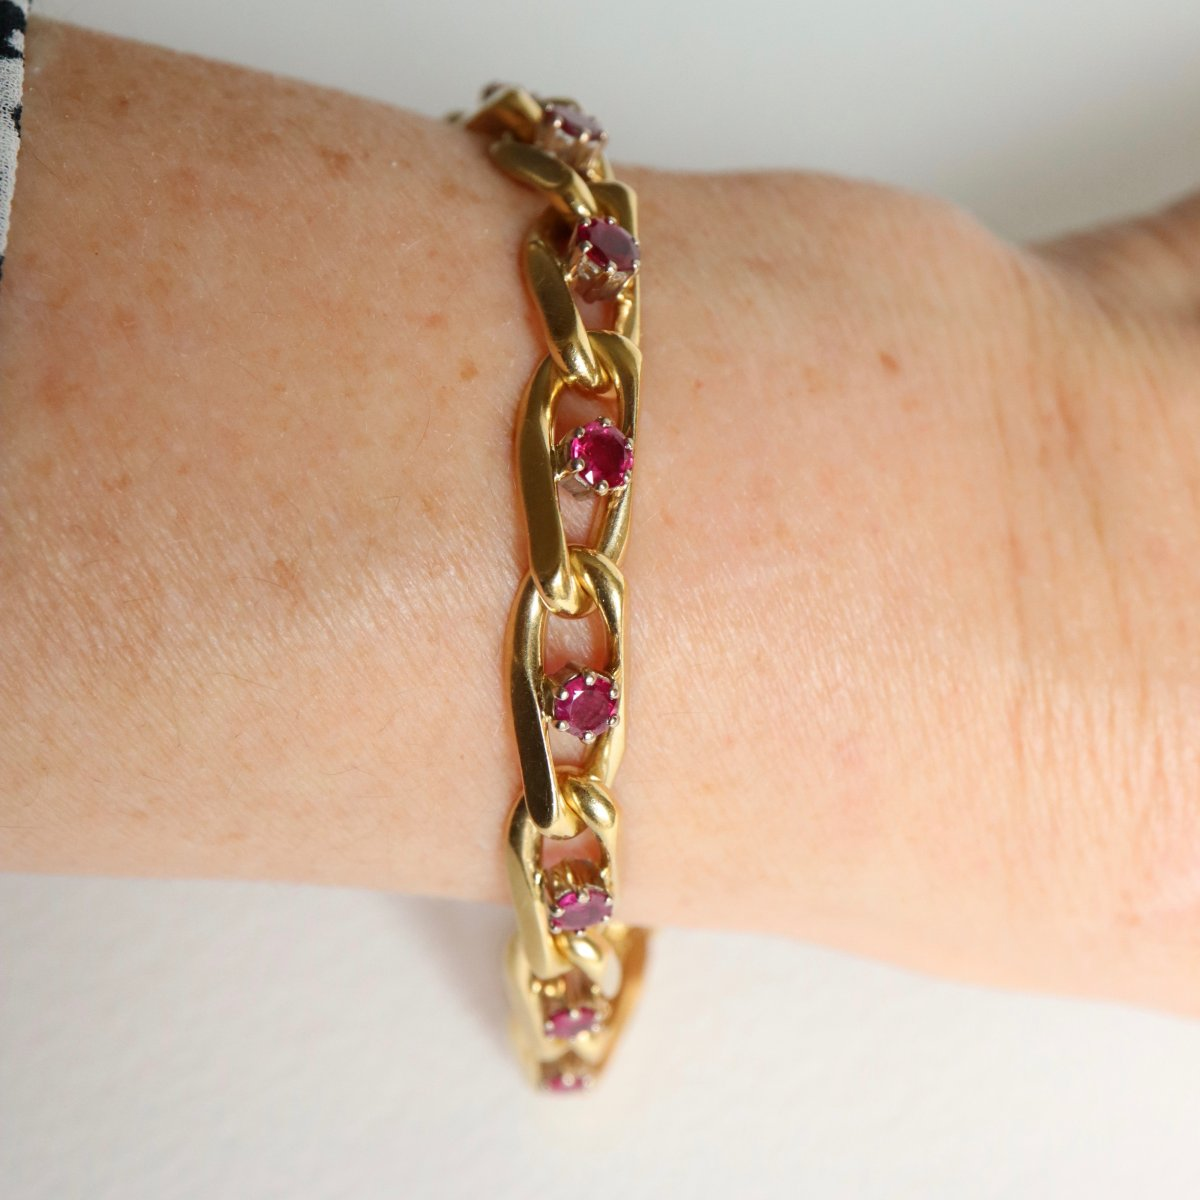 Chaumet Bracelet In 18kt Yellow Gold And Ruby-photo-3